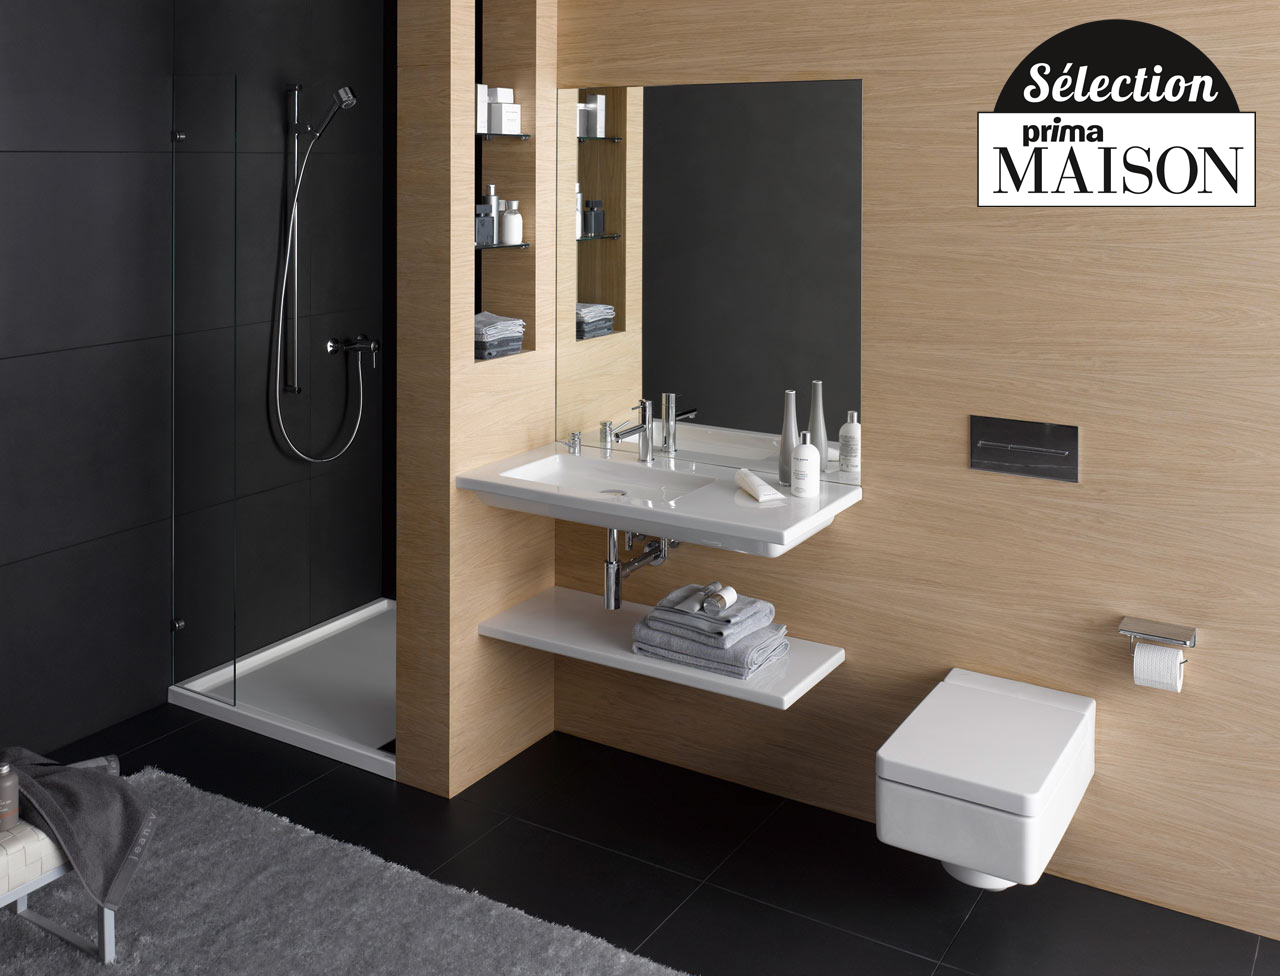 D coration salle de bain 2016 exemples d 39 am nagements for Decor de salle de bain